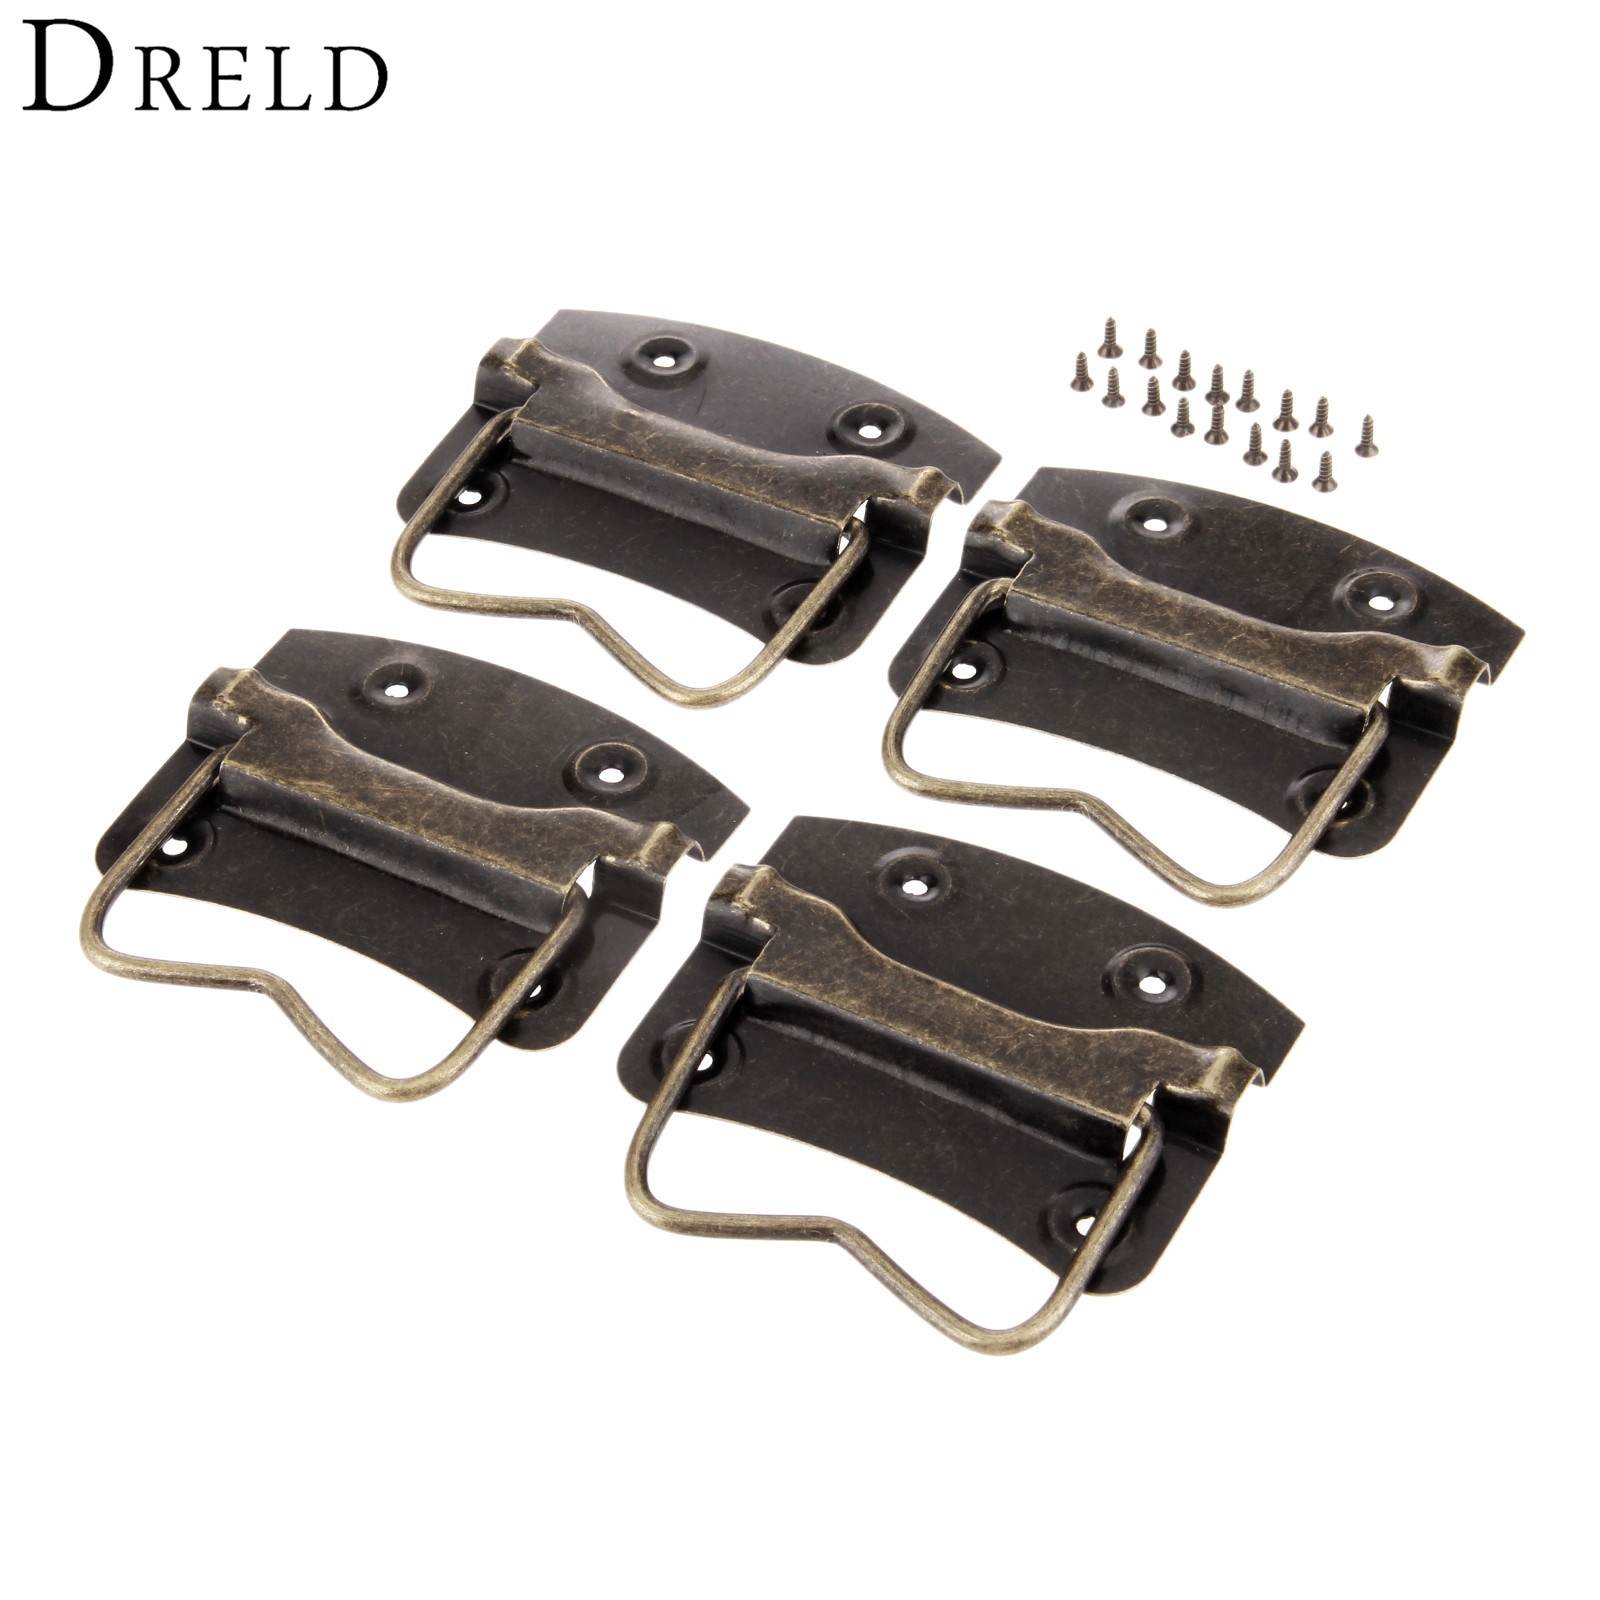 DRELD 4Pc Antique Furniture Handles Wardrobe Door Pulls Dresser Drawer Handles Kitchen Cupboard Handle Cabinet Knobs and Handles dreld 96 128 160mm furniture handle modern cabinet knobs and handles door cupboard drawer kitchen pull handle furniture hardware